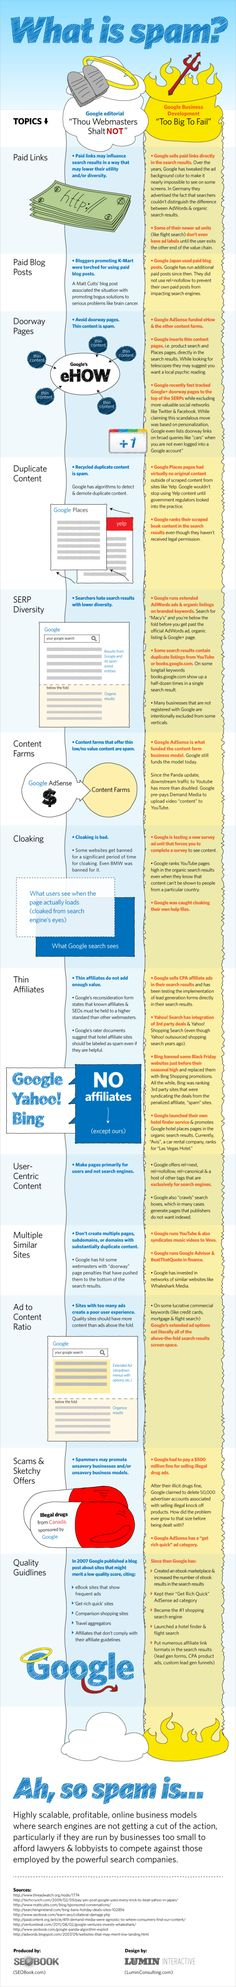 Brilliant infographic from Aaron Wall at SEO Book. What is Spam? Highly scalable, profitable, online business models where search engines are not getting Marketing Articles, E-mail Marketing, Online Marketing, Digital Marketing, What Is Spam, Anti Spam, What Is Search Engine, Blogging, Digital Strategy